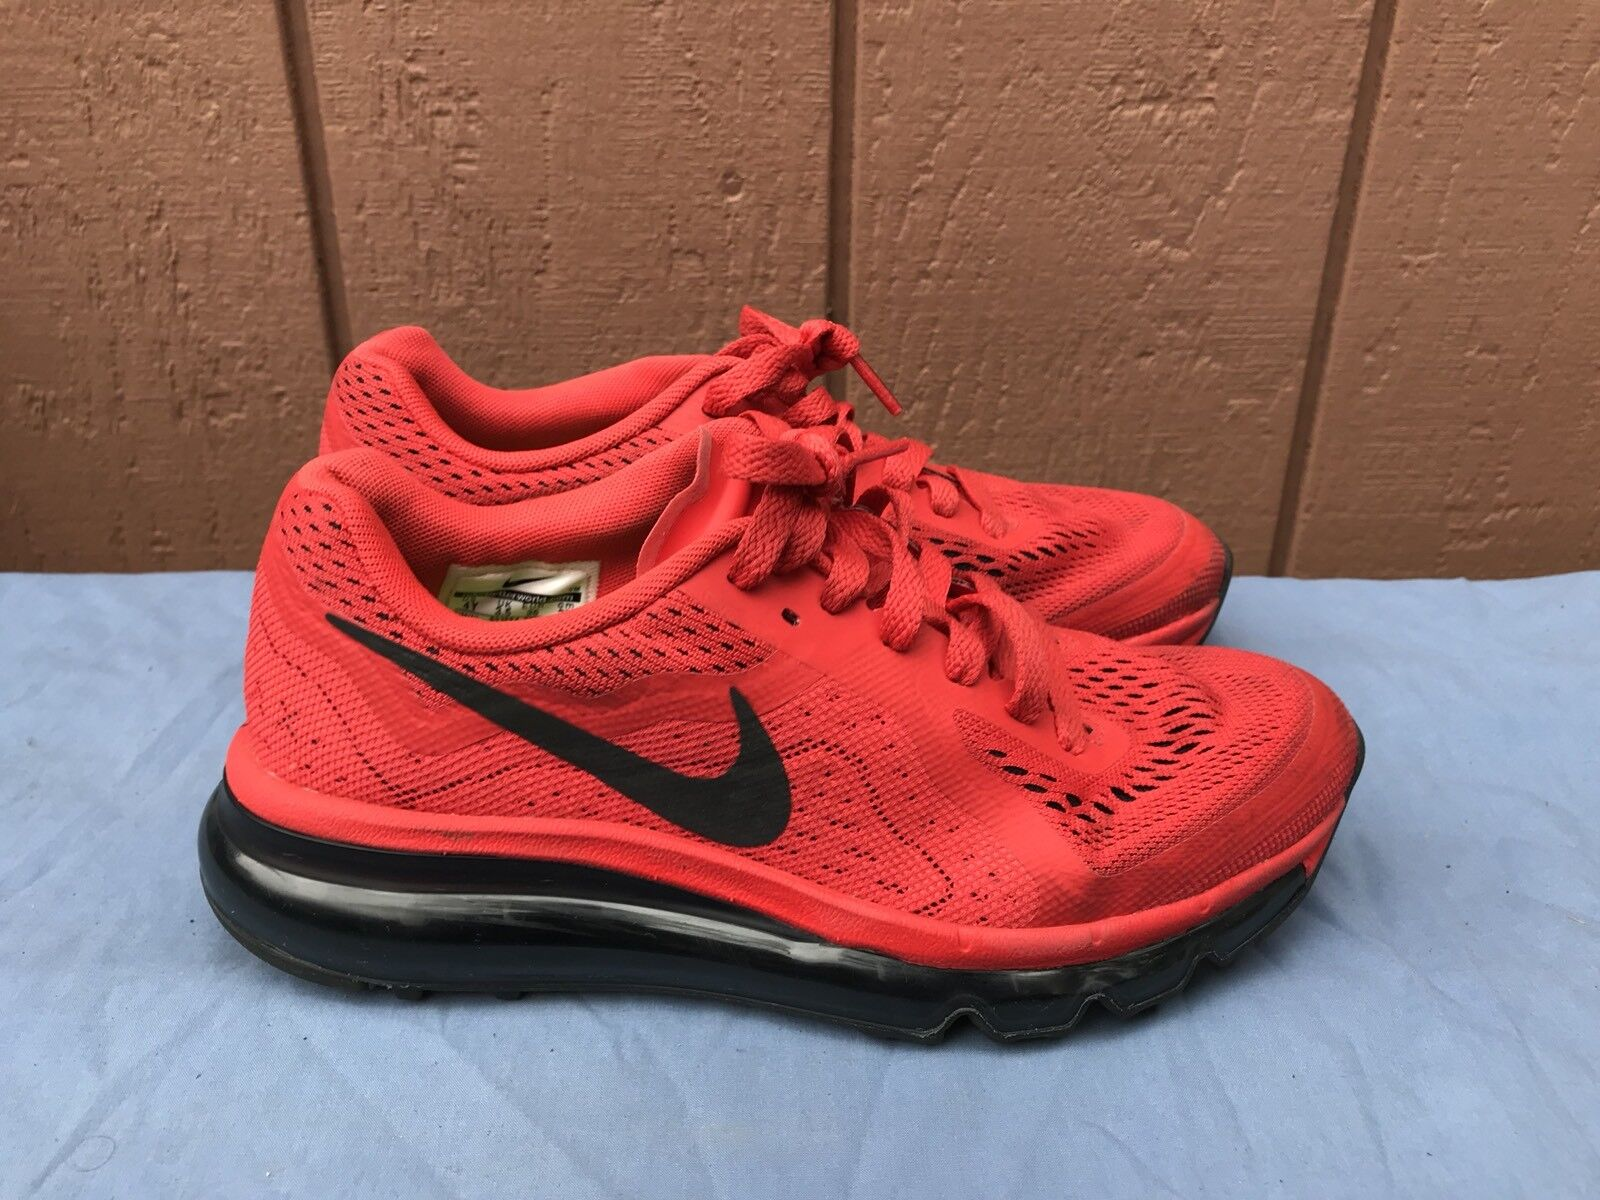 Nike Air Max Red Running Shoes Women's US 5.5 Girls US 4Y A5